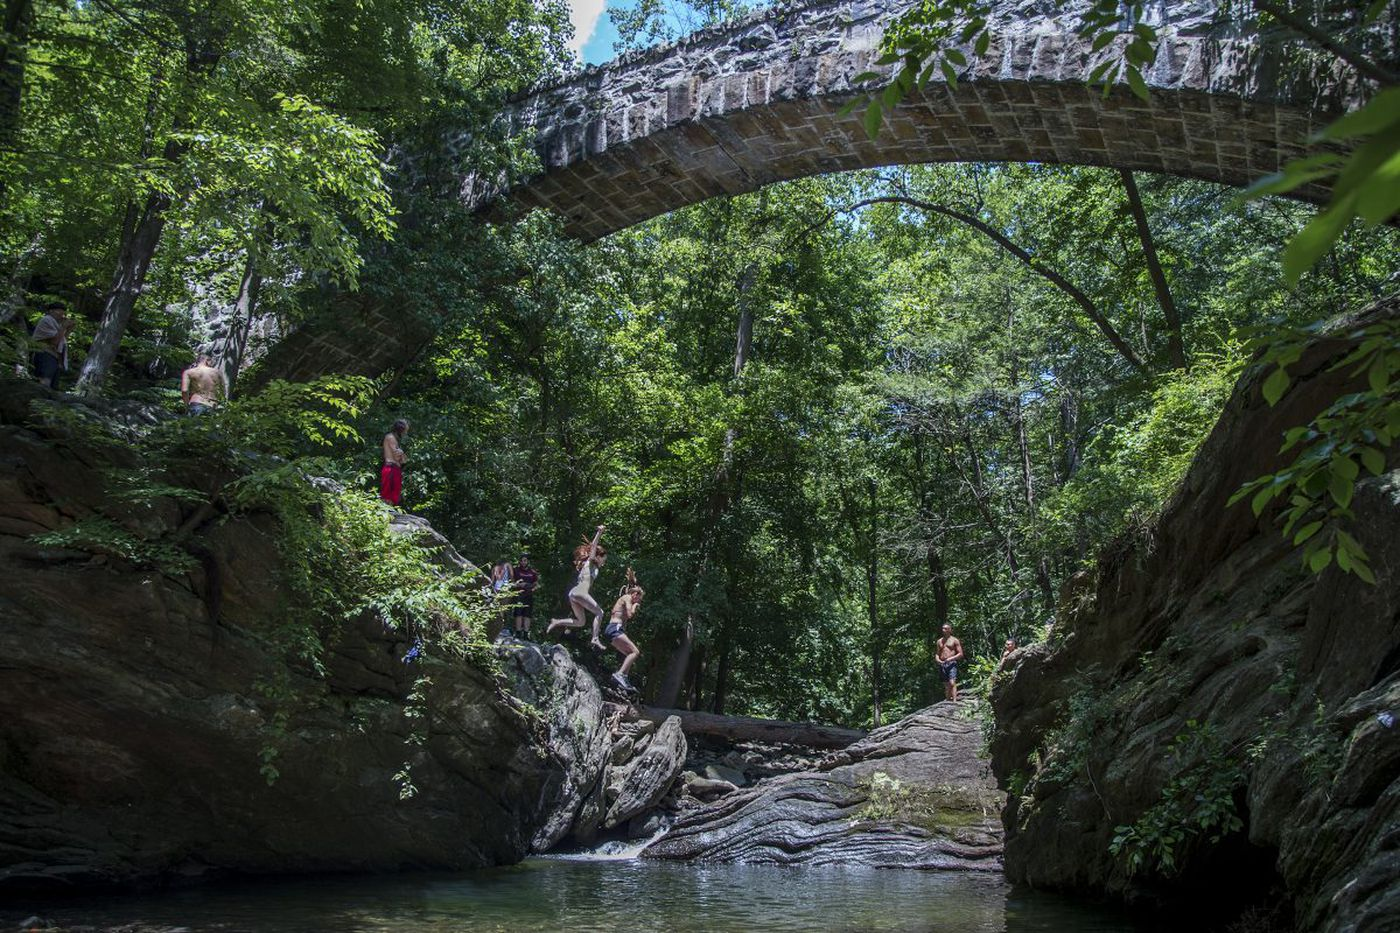 Neighbors want crackdown on Devil's Pool adventure-seekers